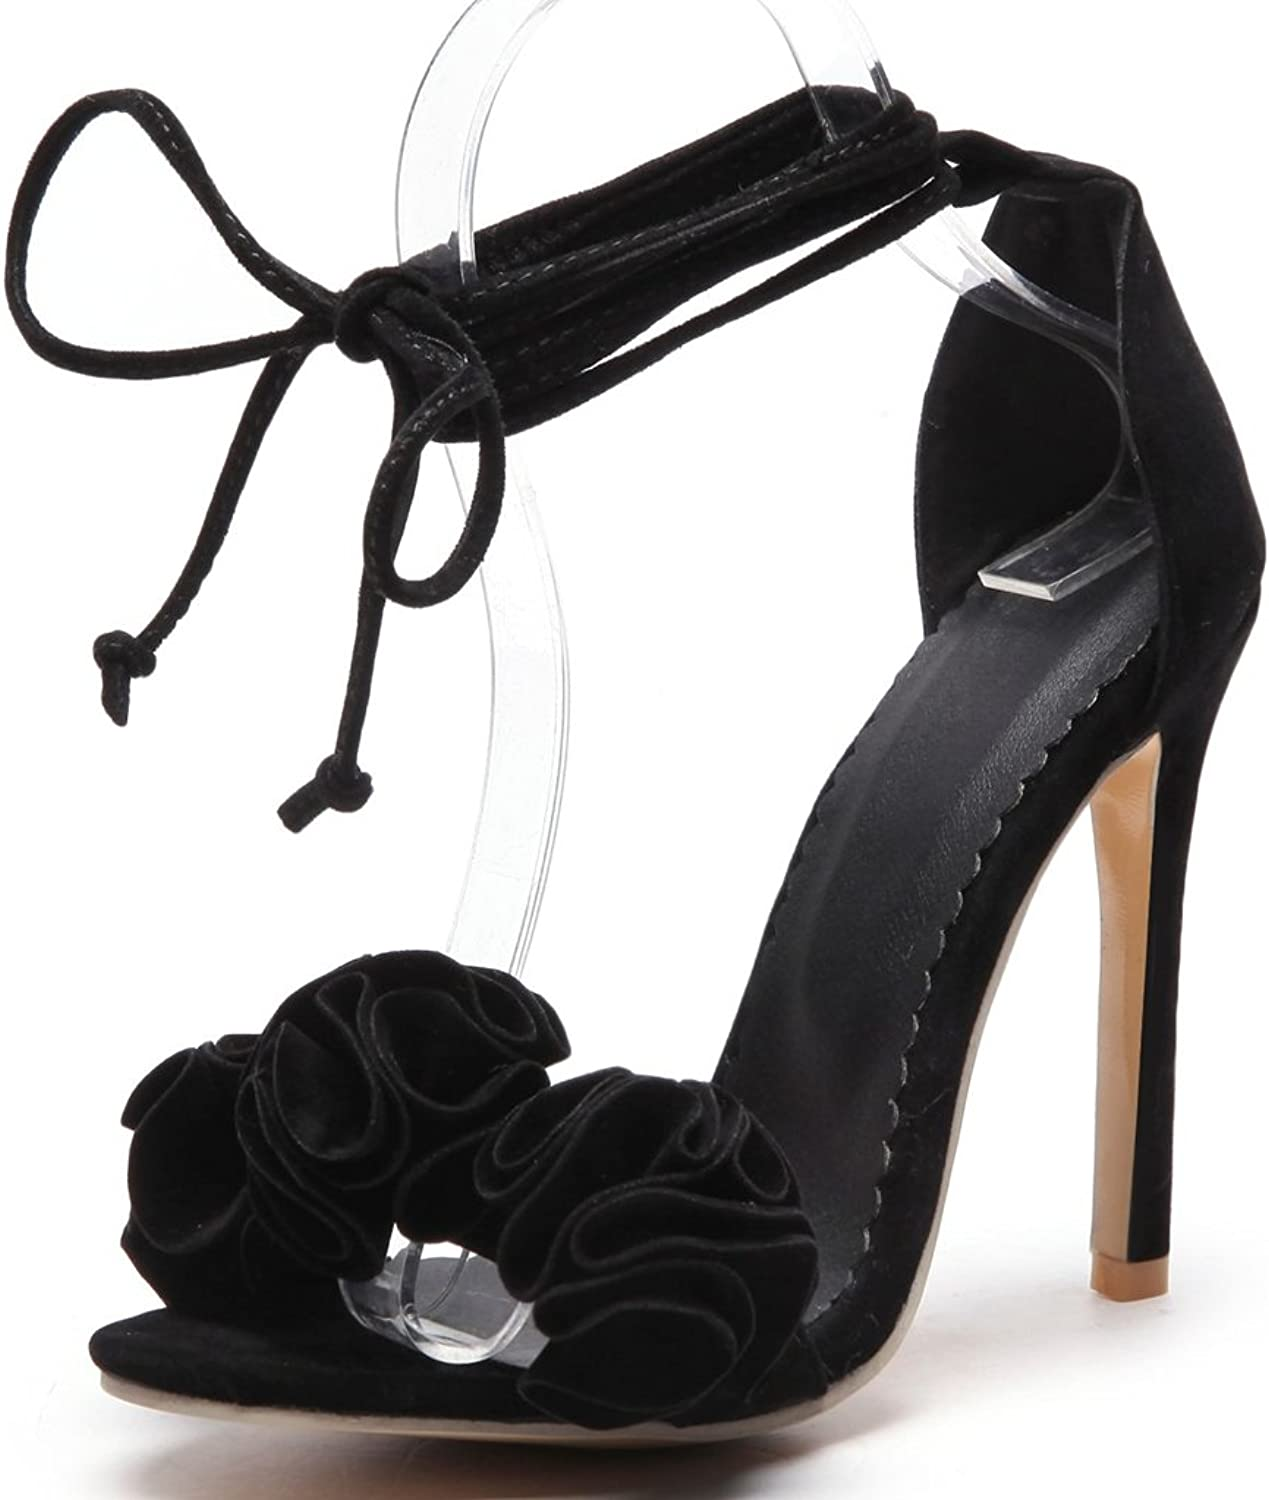 Kaloosh Women's Beautiful Suede Leather Belt Strap Flowers Stiletto High Heel Party Sandals